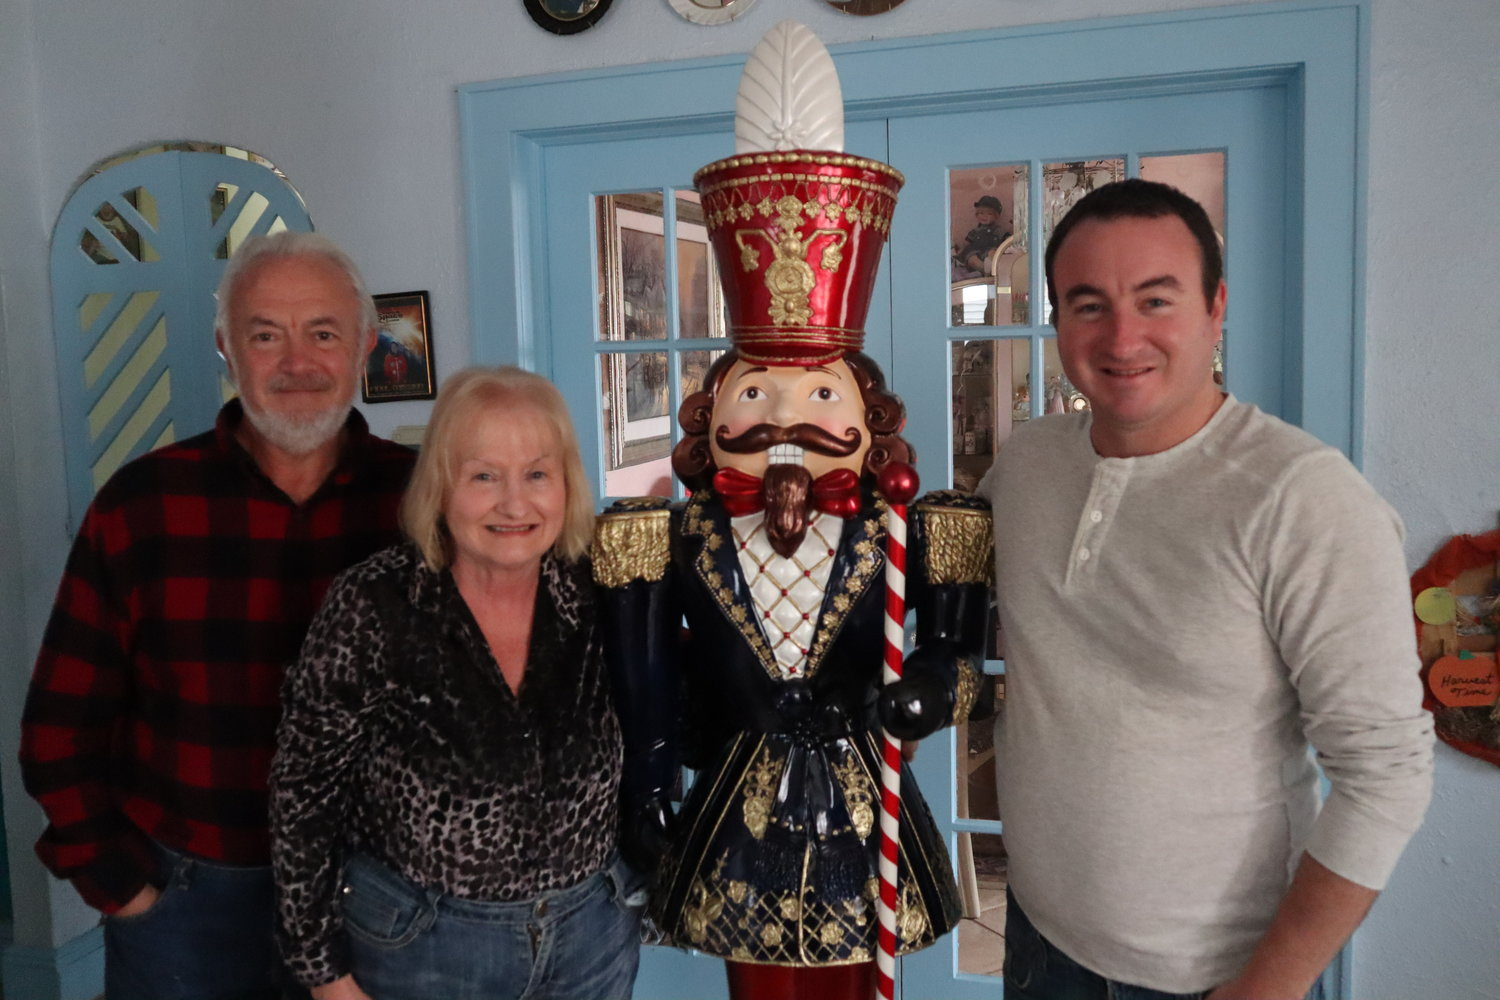 The Heides' Christmas display extends inside their house. Philip, right, takes pride in his nutcracker collection and bought this 6-foot one recently.